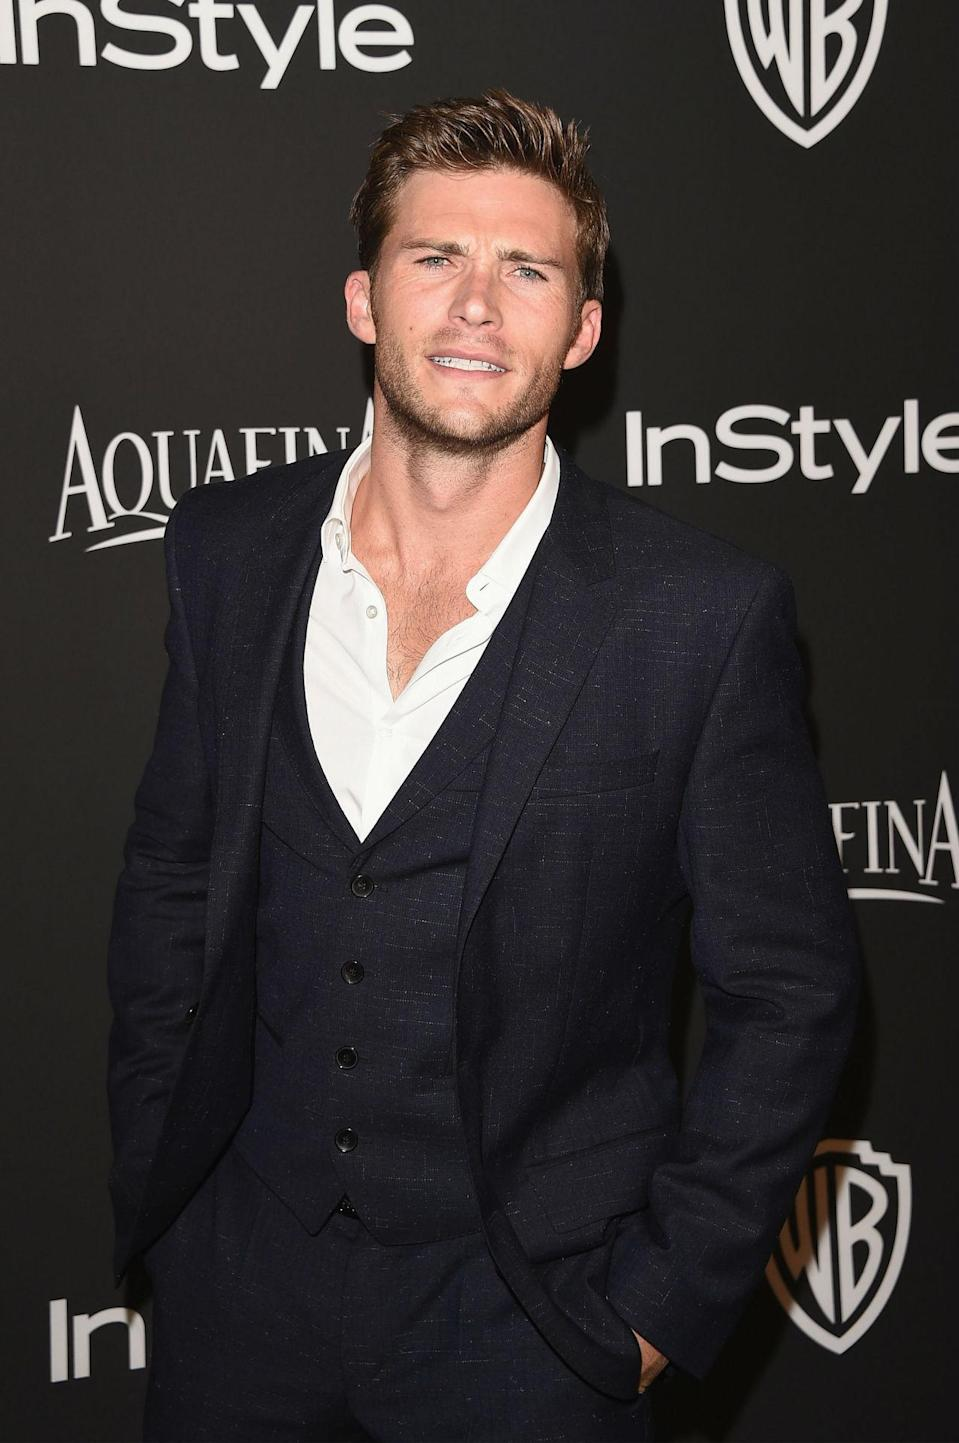 Tiene ocho hijos de cinco mujeres diferentes, pero hay uno que no solo ha seguido sus pasos, sino que parece su doble: Scott Eastwood. El próximo mes de agosto le podremos ver en 'Escuadrón Suicida' ('Suicide Squad'). (Foto: Jason Merritt / Getty Images Entertainment / Getty Images).